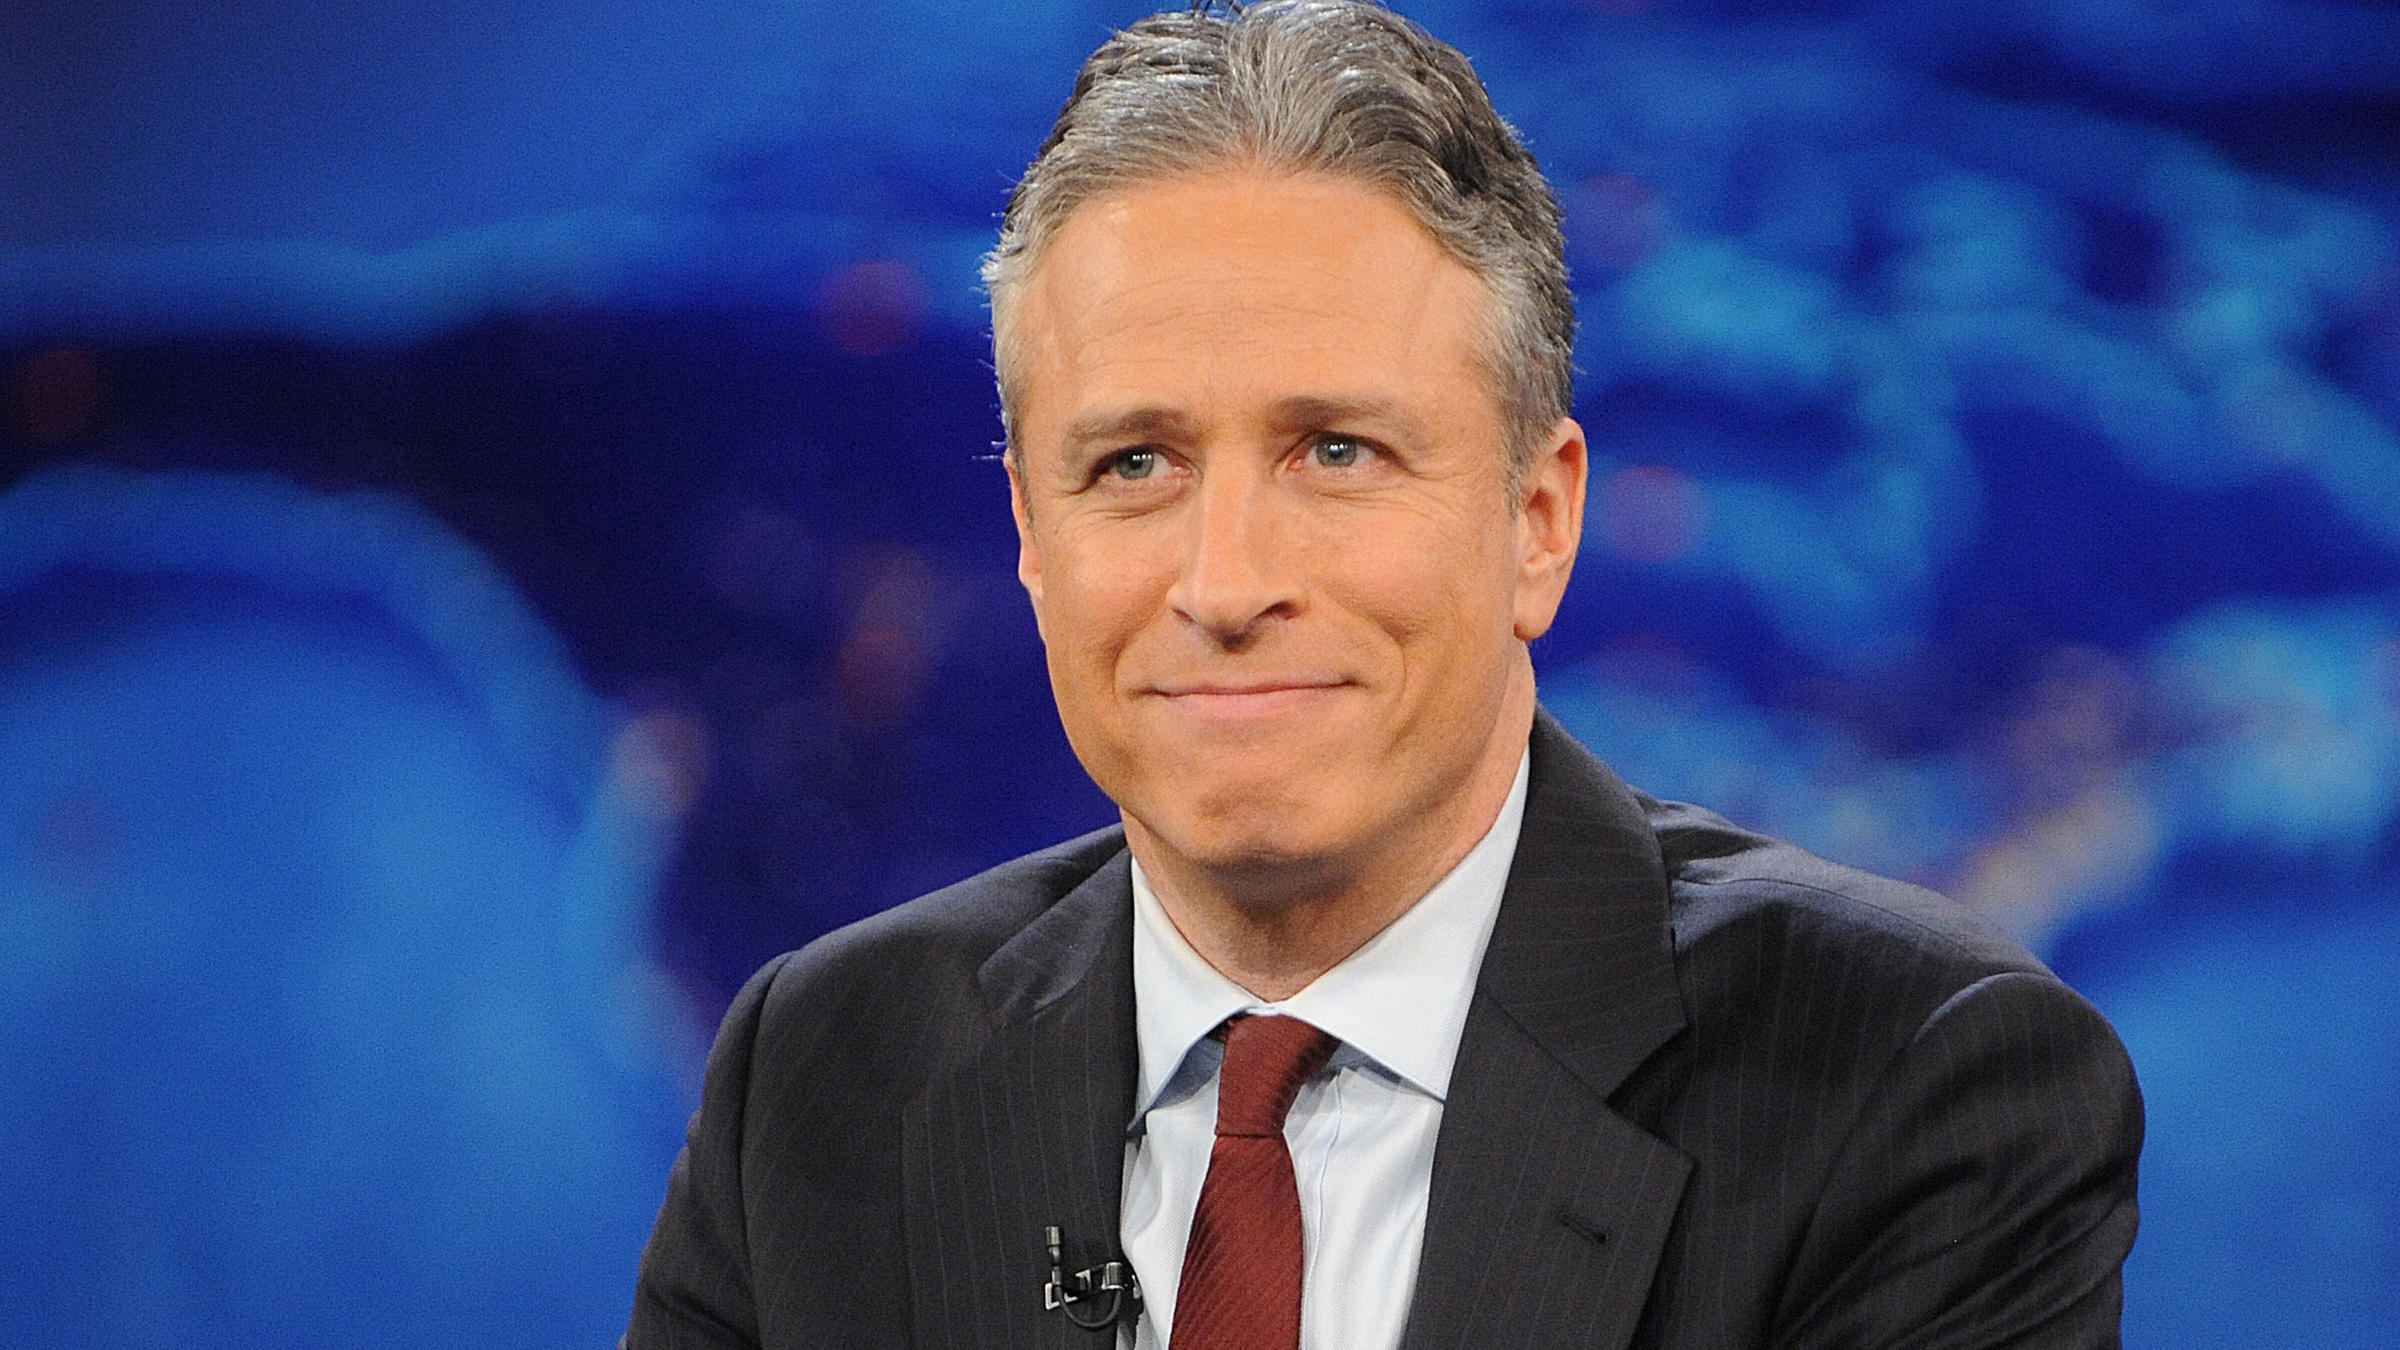 jon stewart on his daily show run it so far exceeded